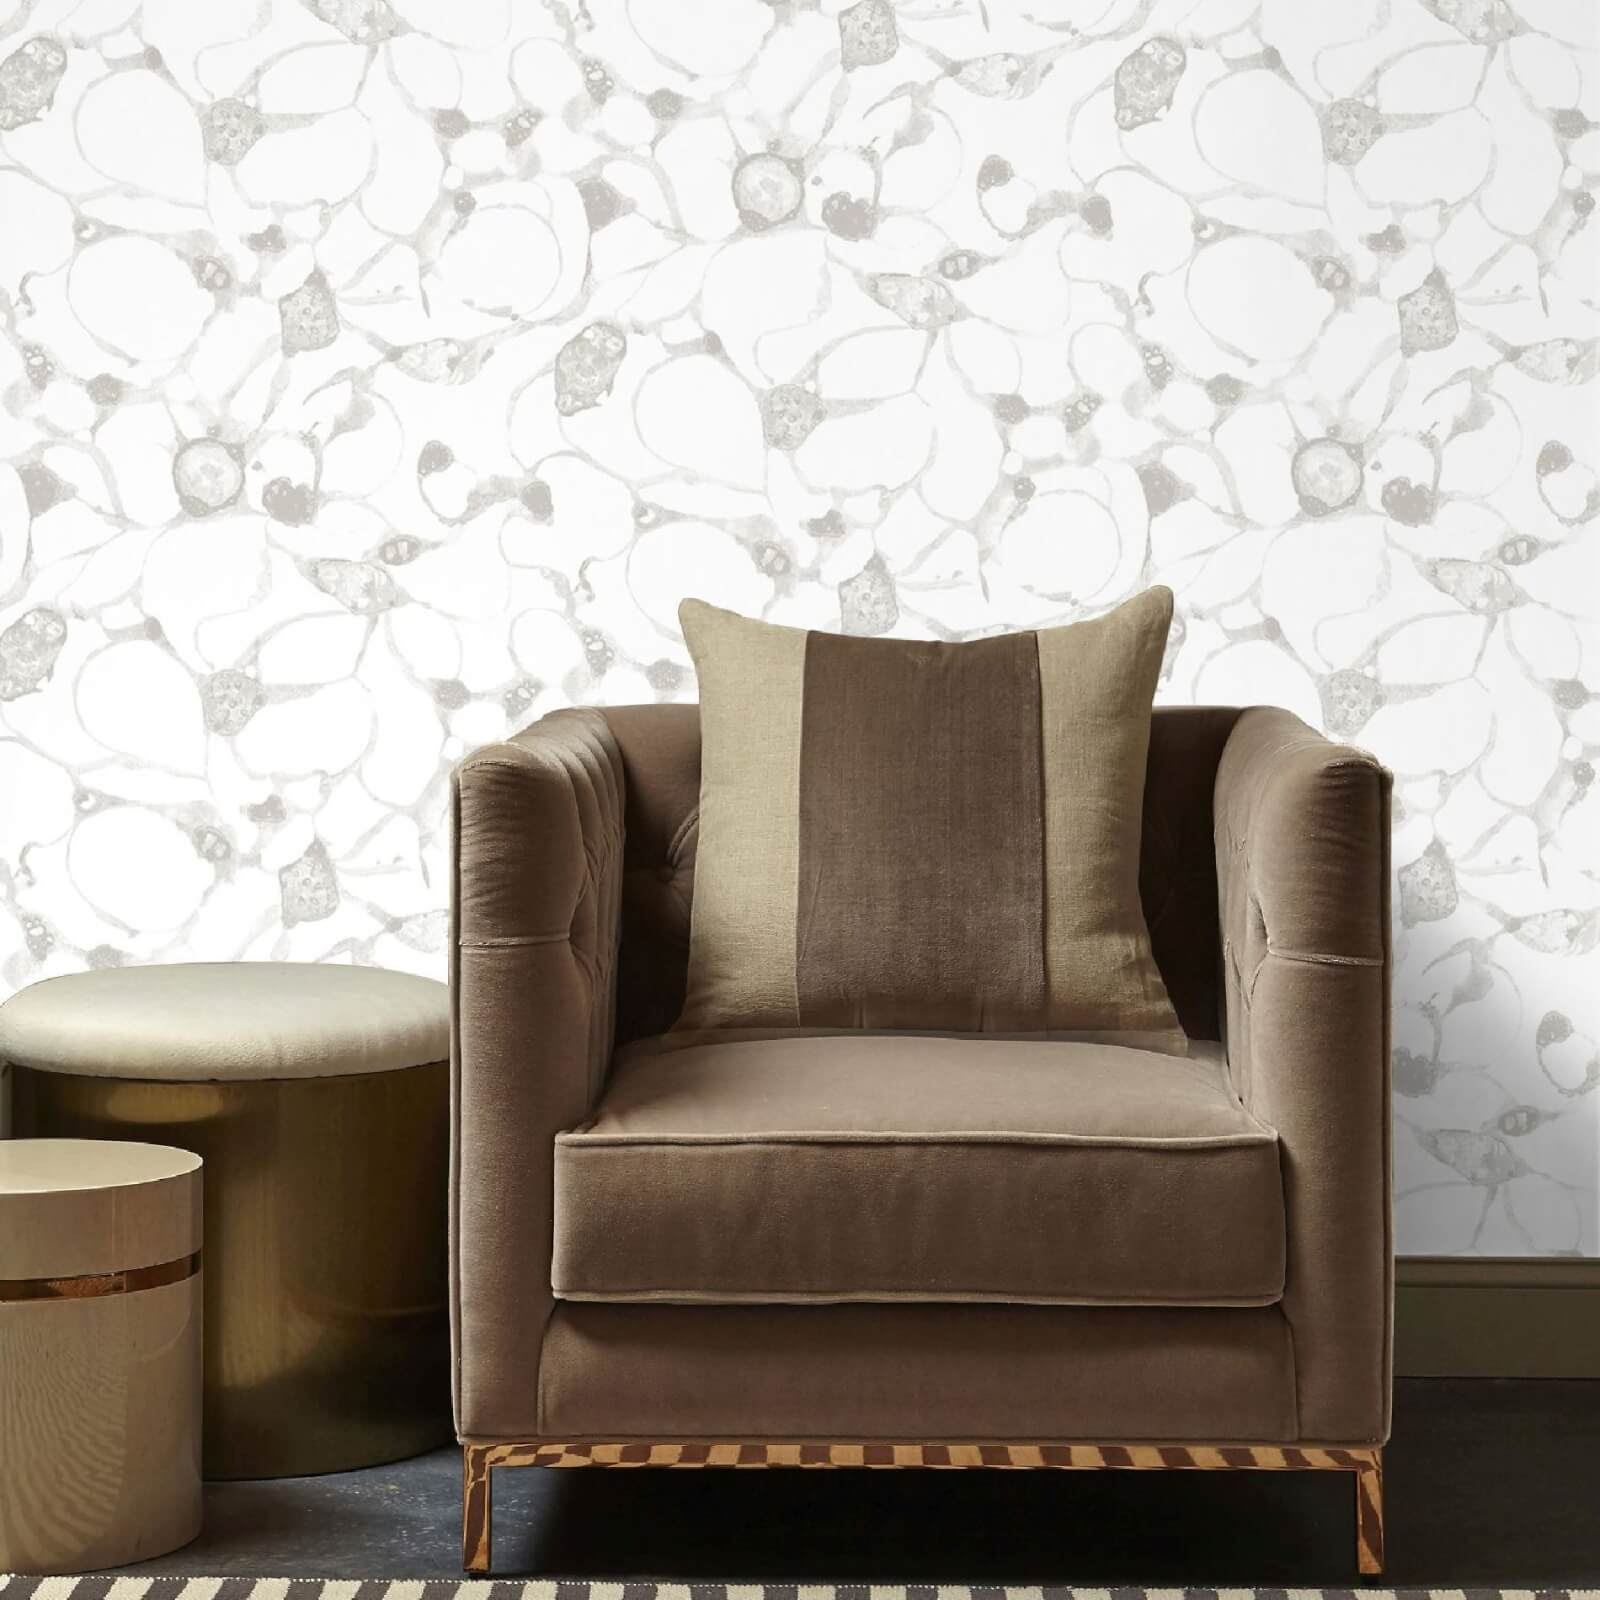 Kelly Hoppen Splash Metallic Wallpaper - Silver